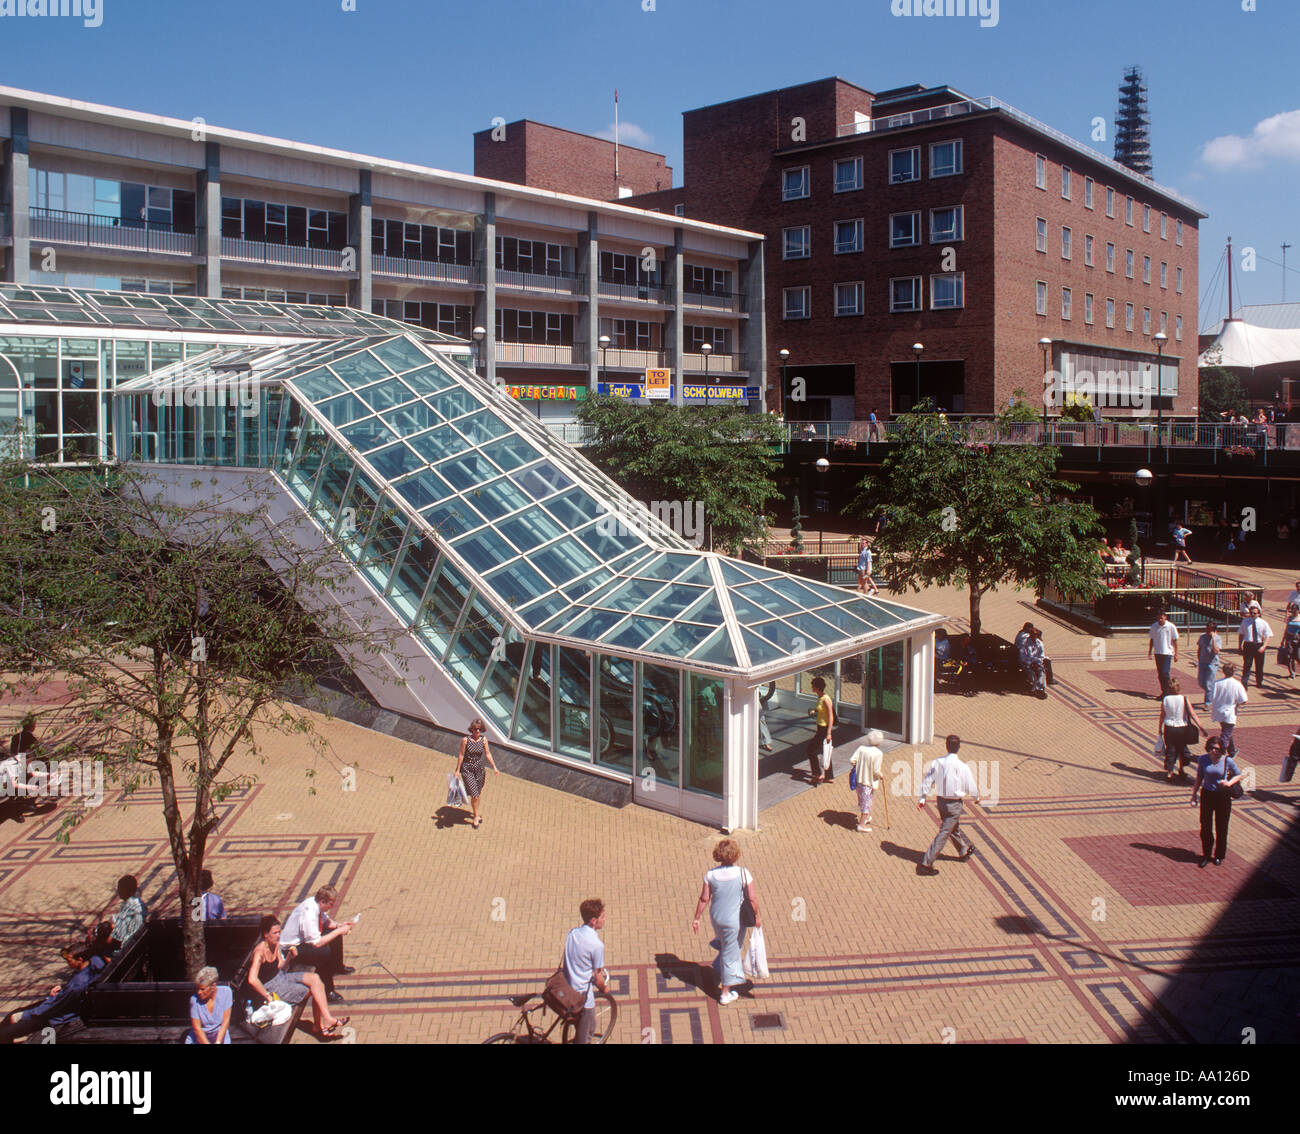 Places To Visit Coventry Uk: Precinct Coventry Uk Stock Photos & Precinct Coventry Uk